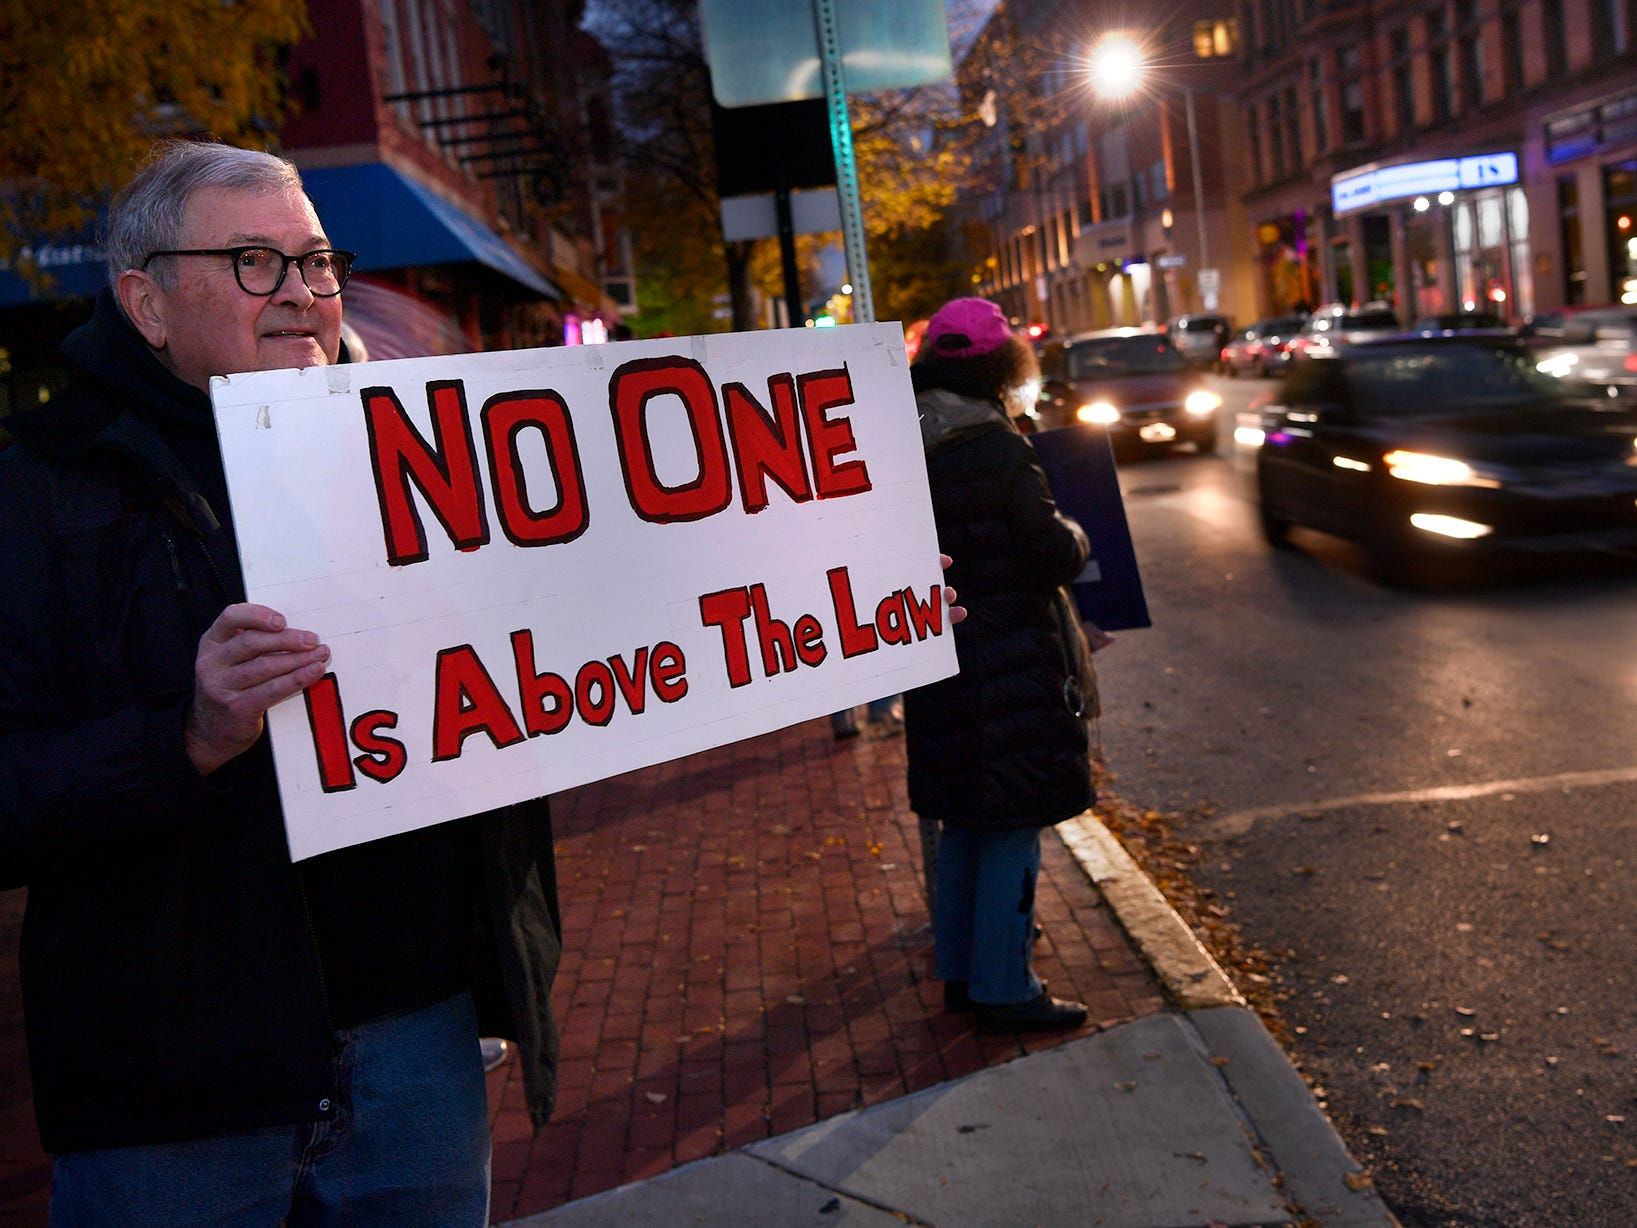 Dave Owens of York joins a  group of about 50 people inprotest on Continental Square in York following the forced resignation of Attorney General Jeff Sessions, Thursday, November 7, 2018. The event was sponsored by Indivisible York.